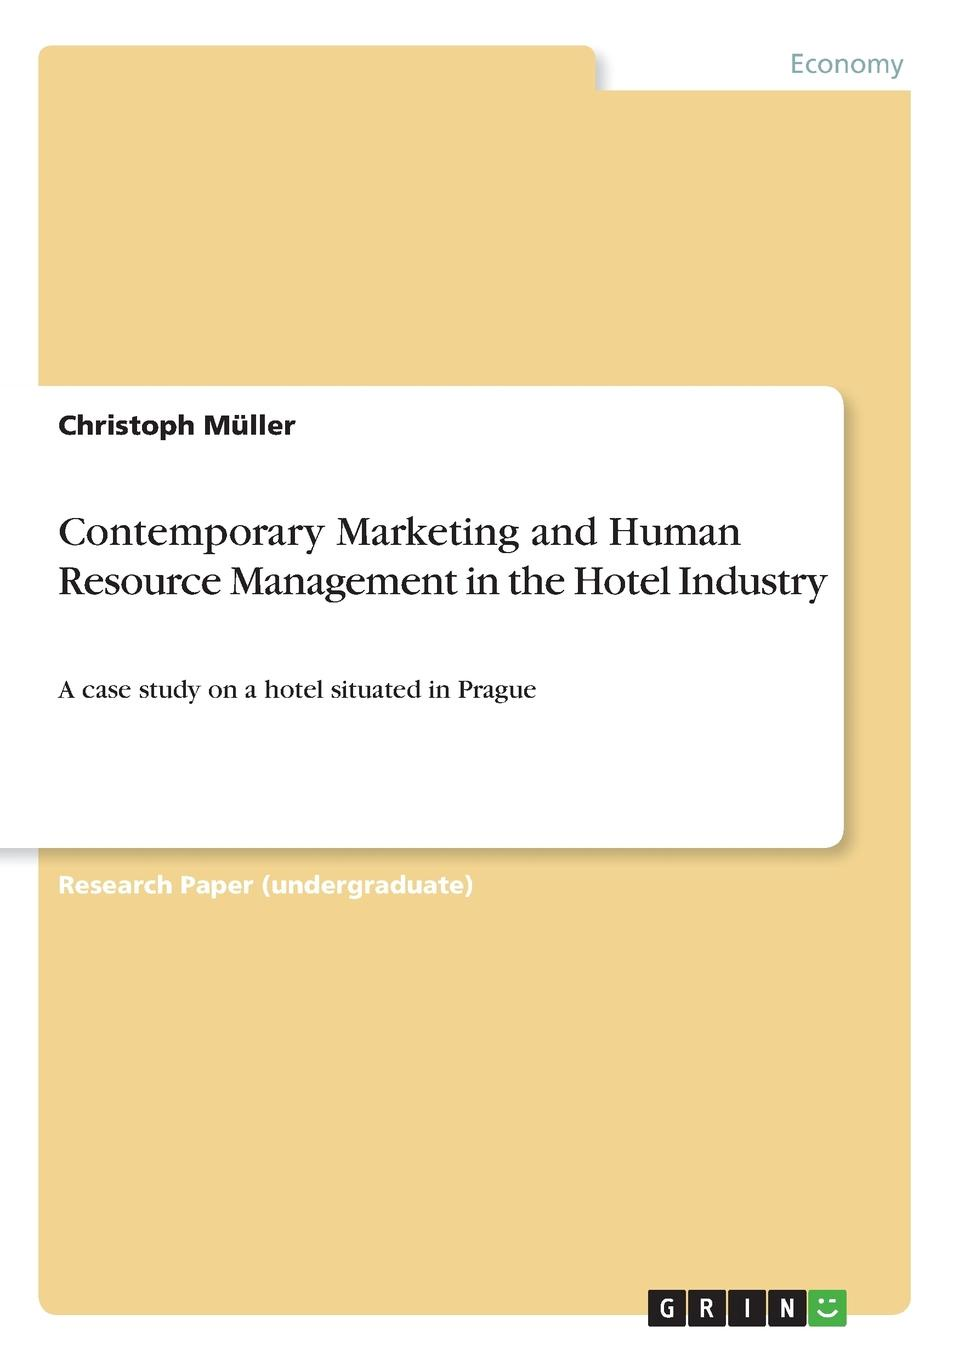 Christoph Müller Contemporary Marketing and Human Resource Management in the Hotel Industry making your mark in hotel industry jobs